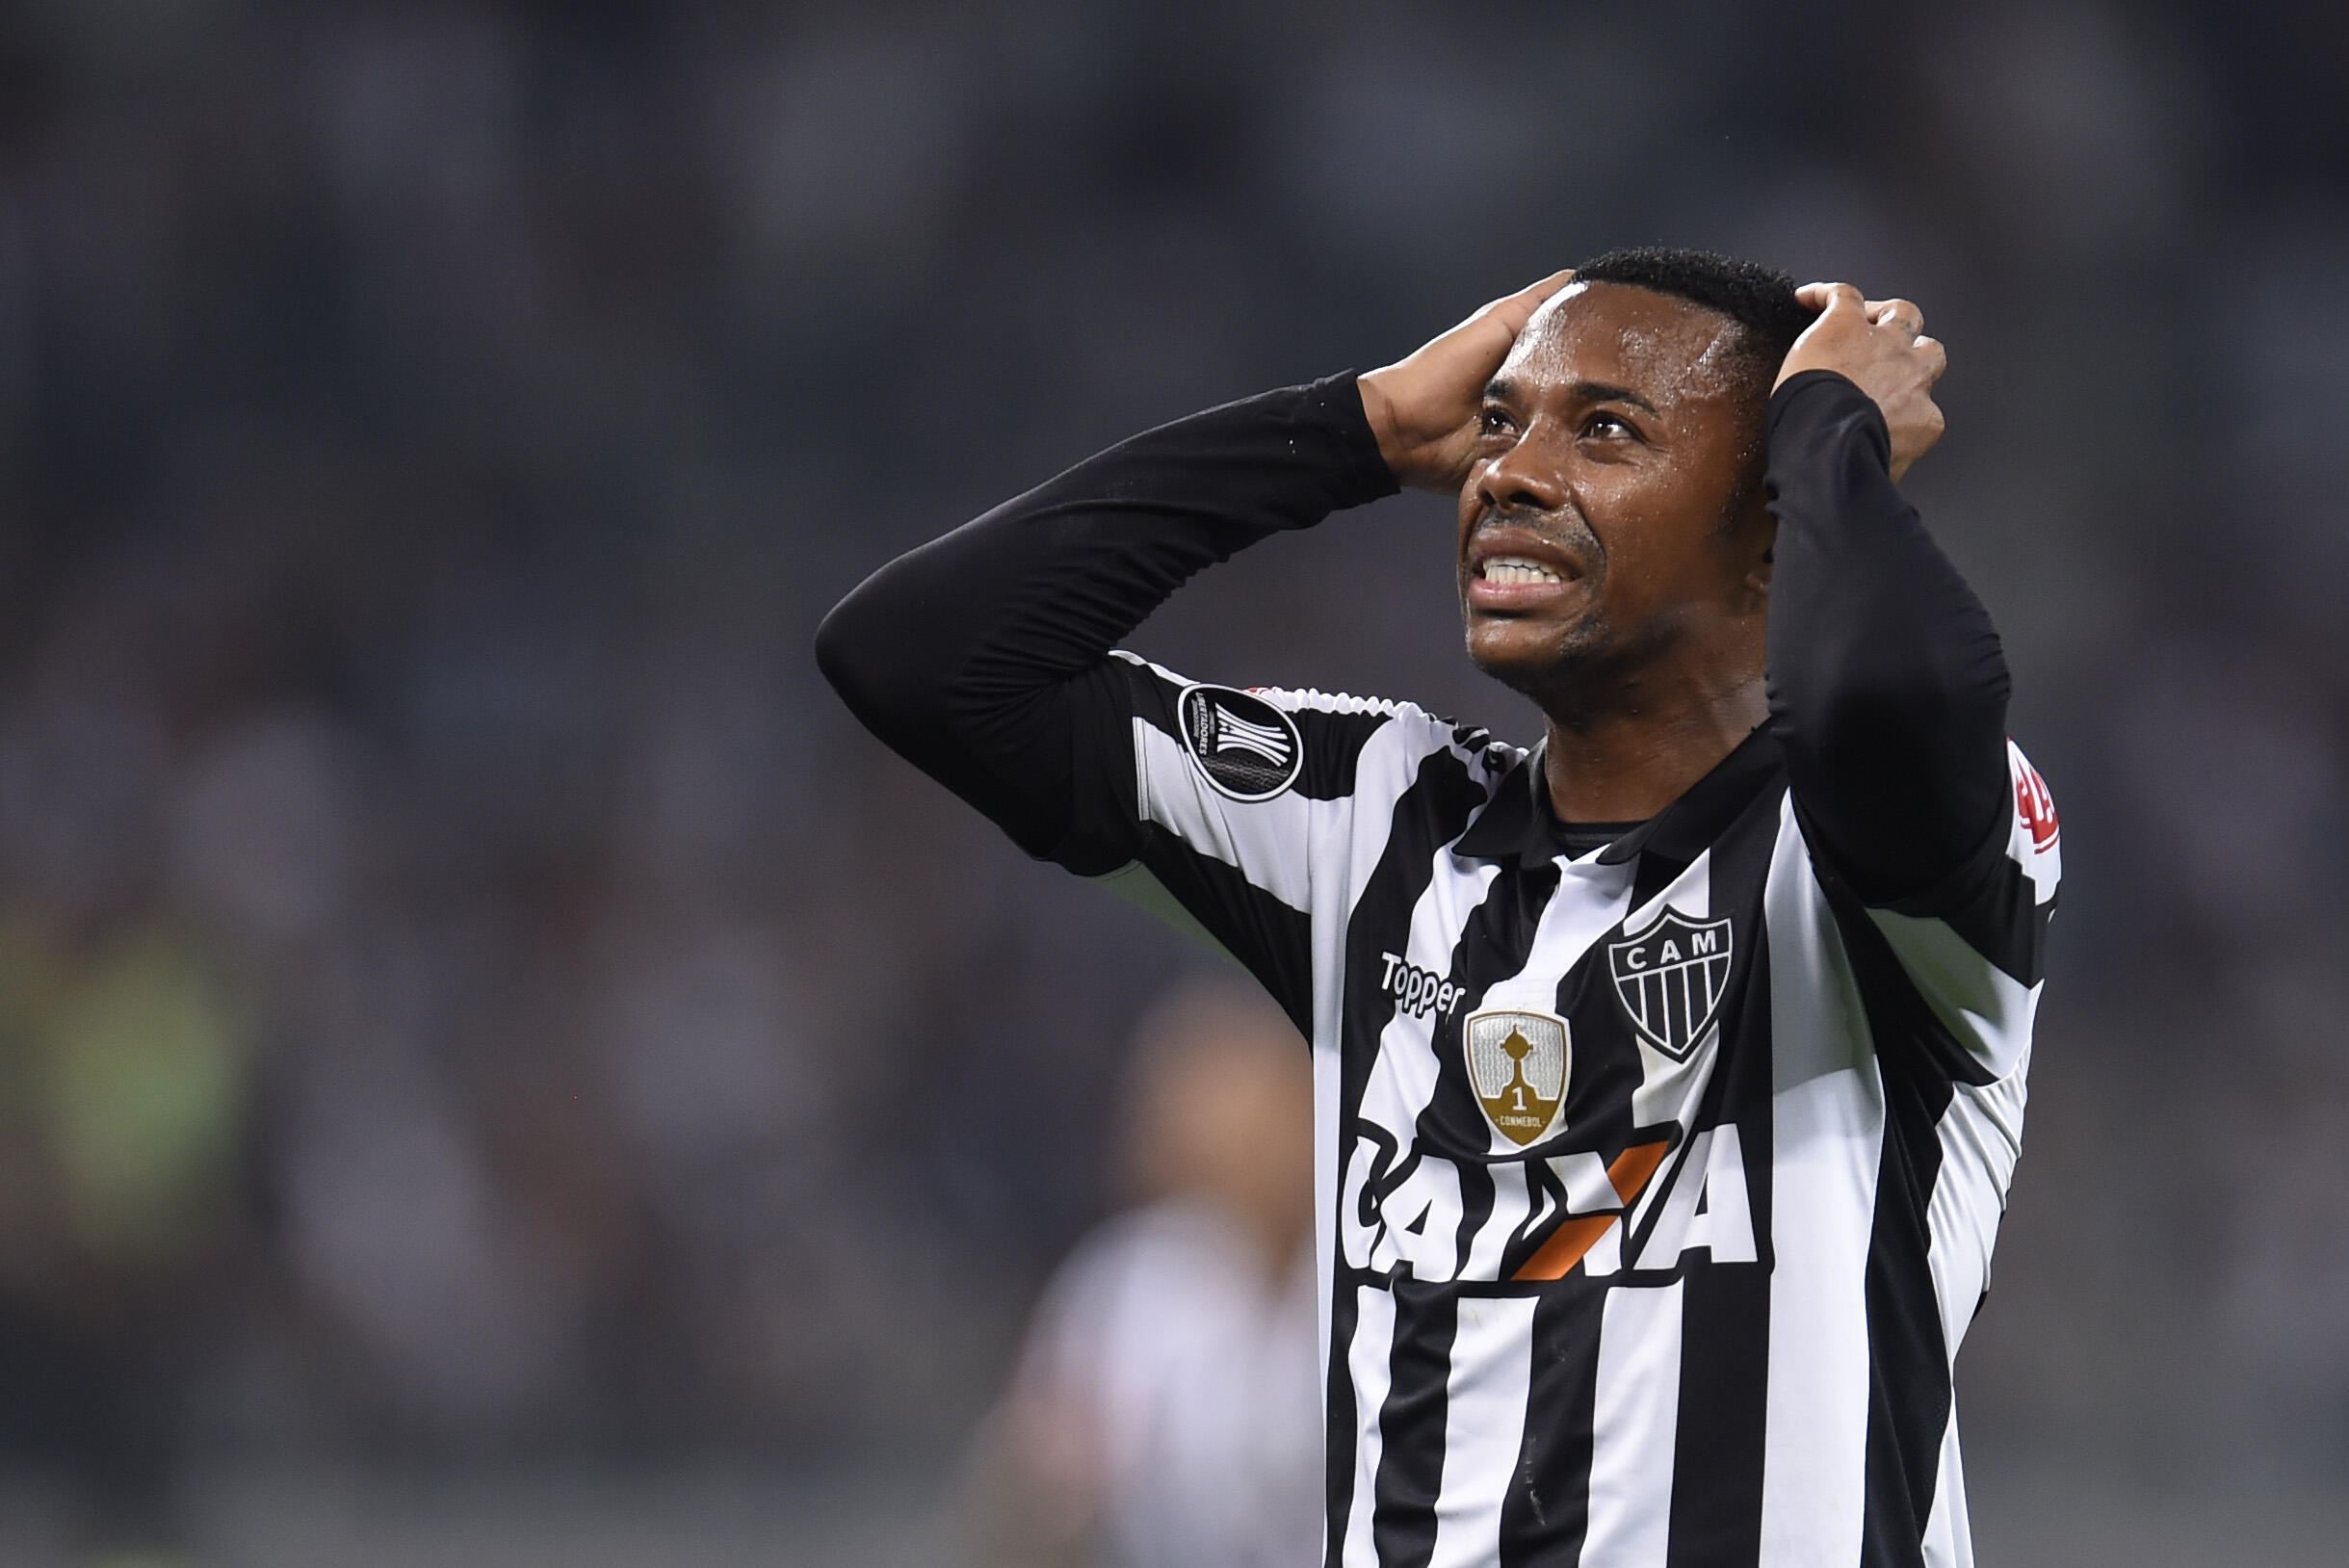 Brazilian footballer Robinho has been forced to part ways with his former club Santos amid pressure over his conviction for gang rape by an Italian court, a charge he denies